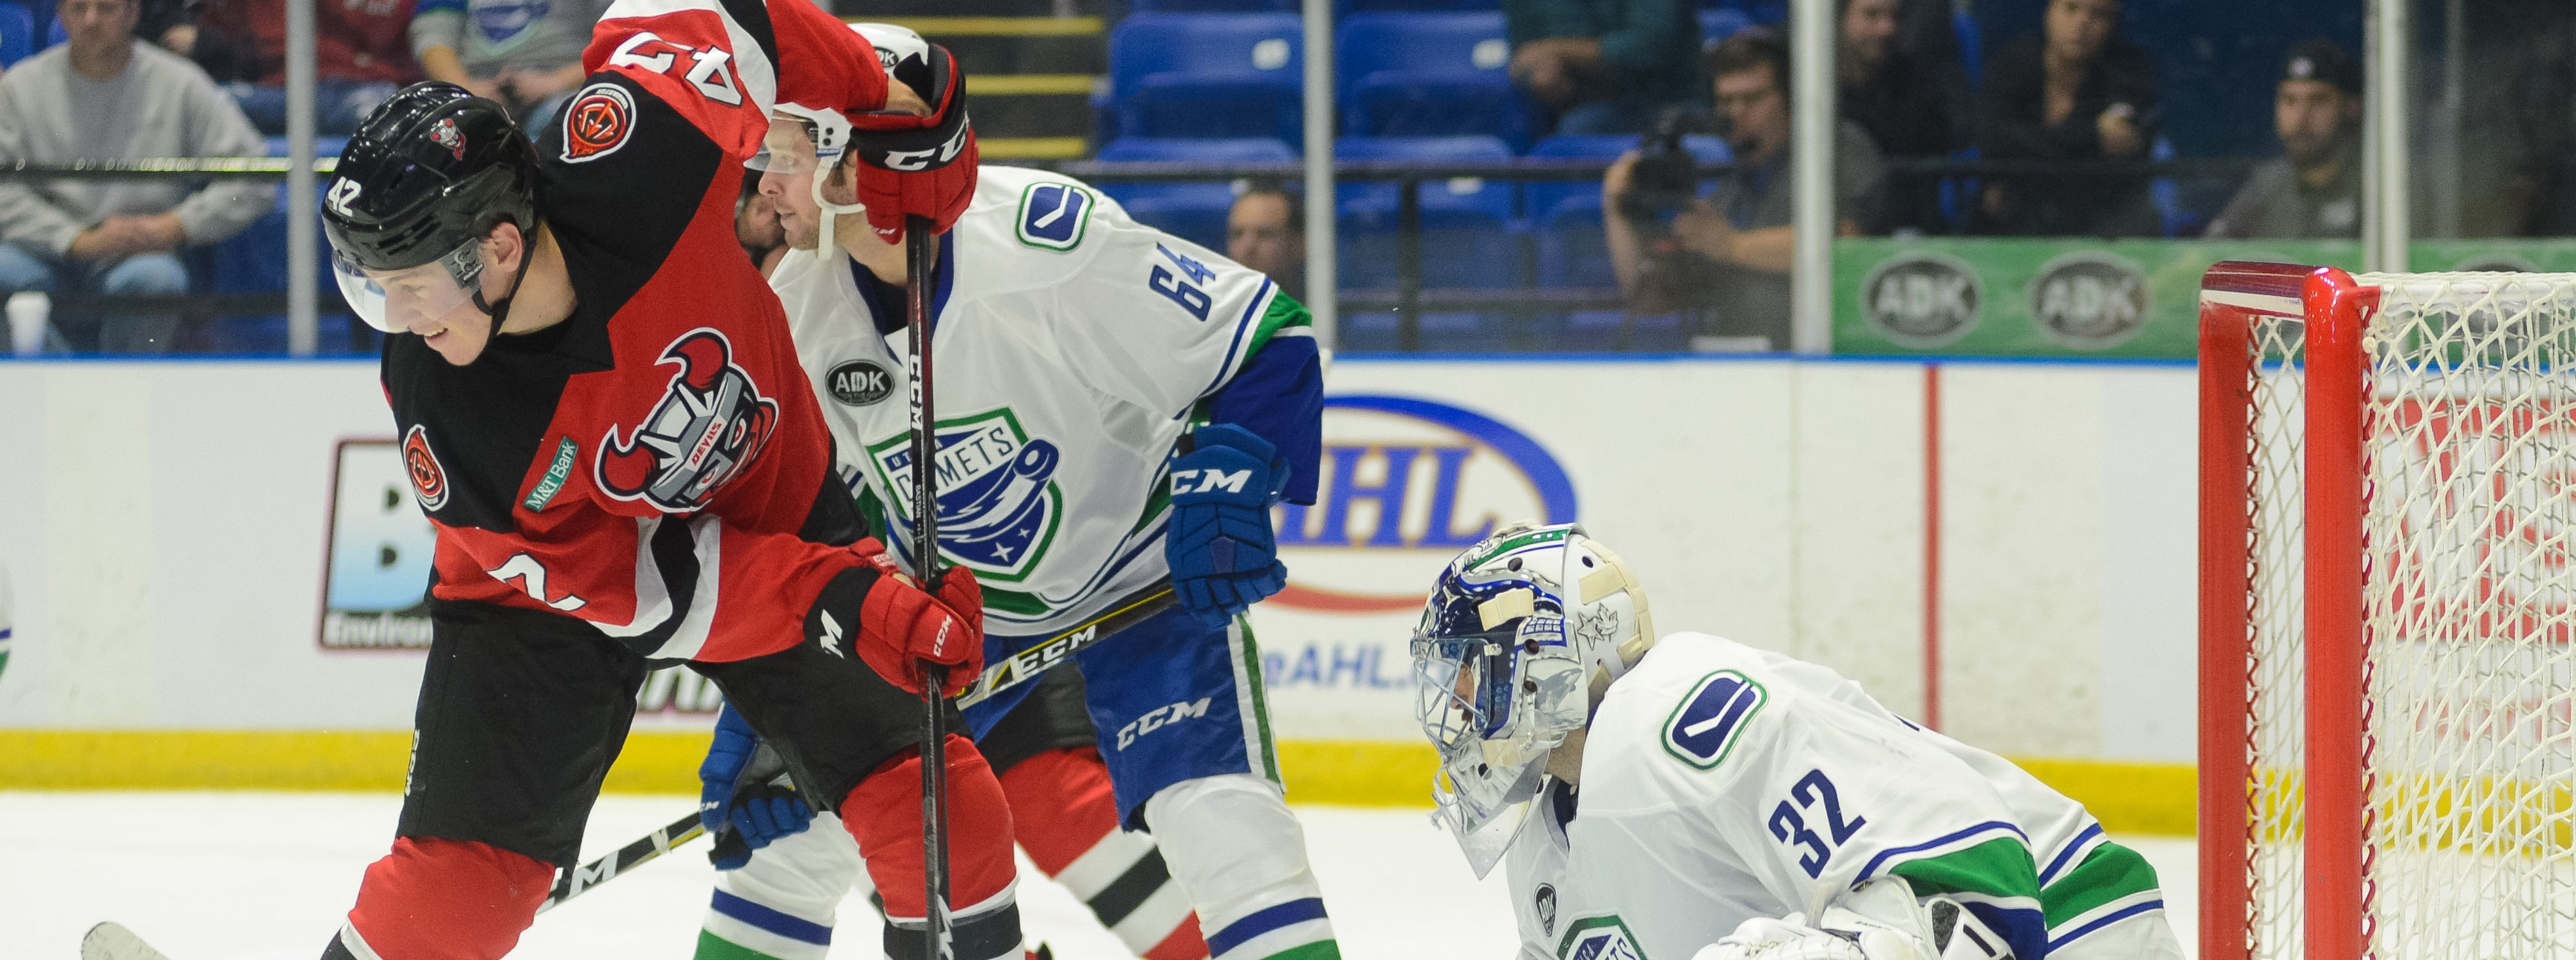 COMETS HEAD SOUTH FOR DUEL WITH DEVILS